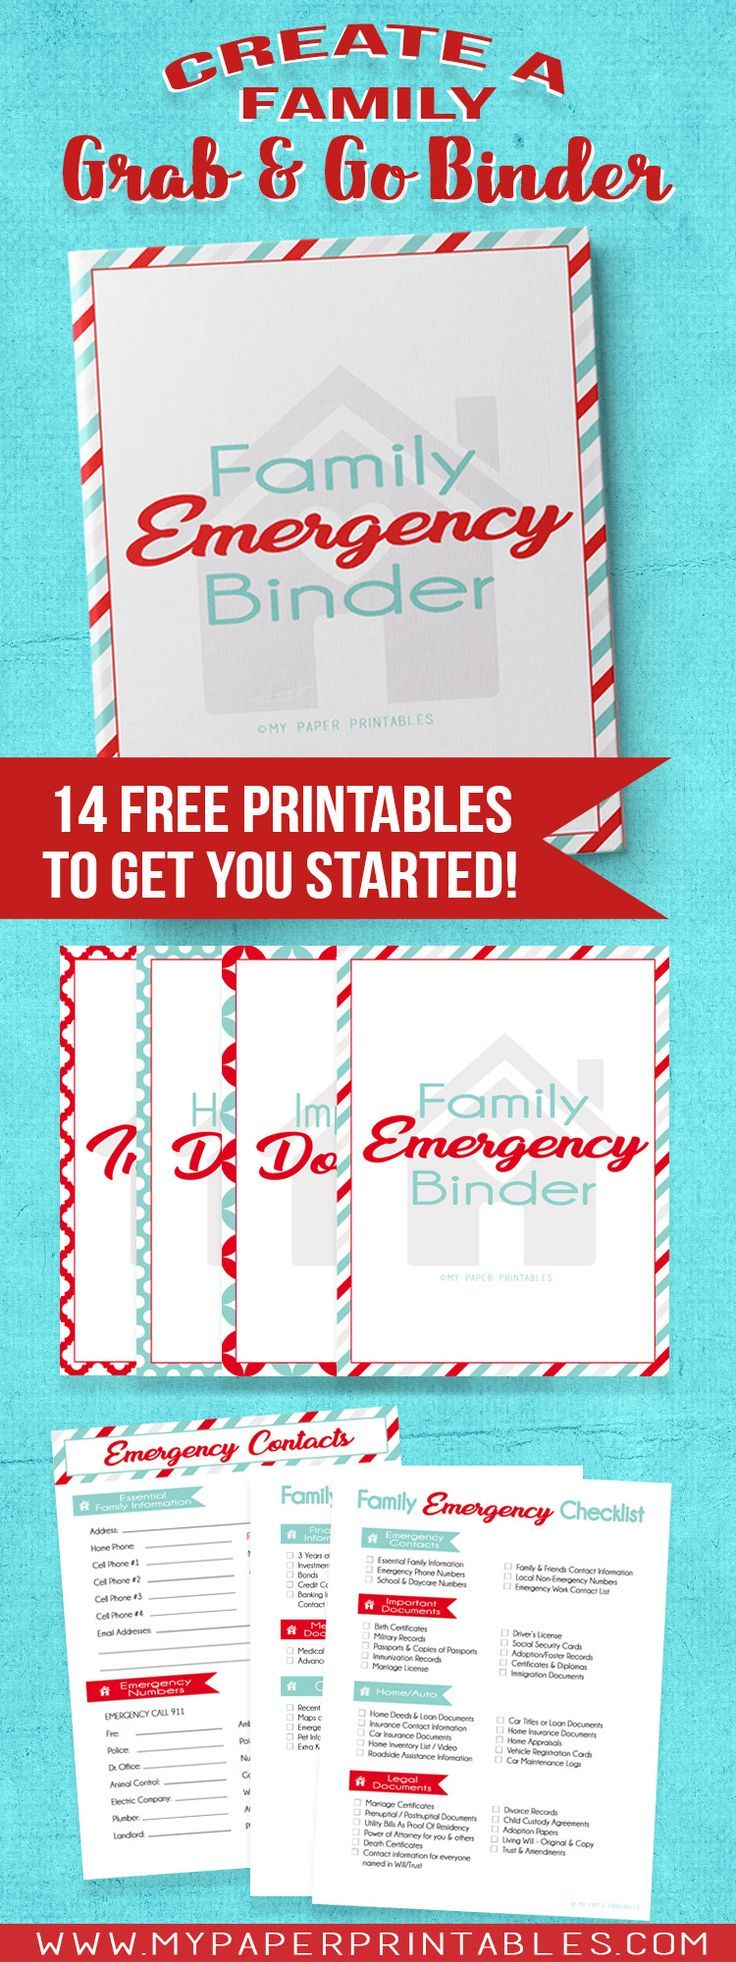 Do you have a Family Emergency Binder?  14 FREE DOWNLOADABLE PRINTABLES to get you started!  Create your grab and go binder in minutes with your important documents  and our easy organizational system.